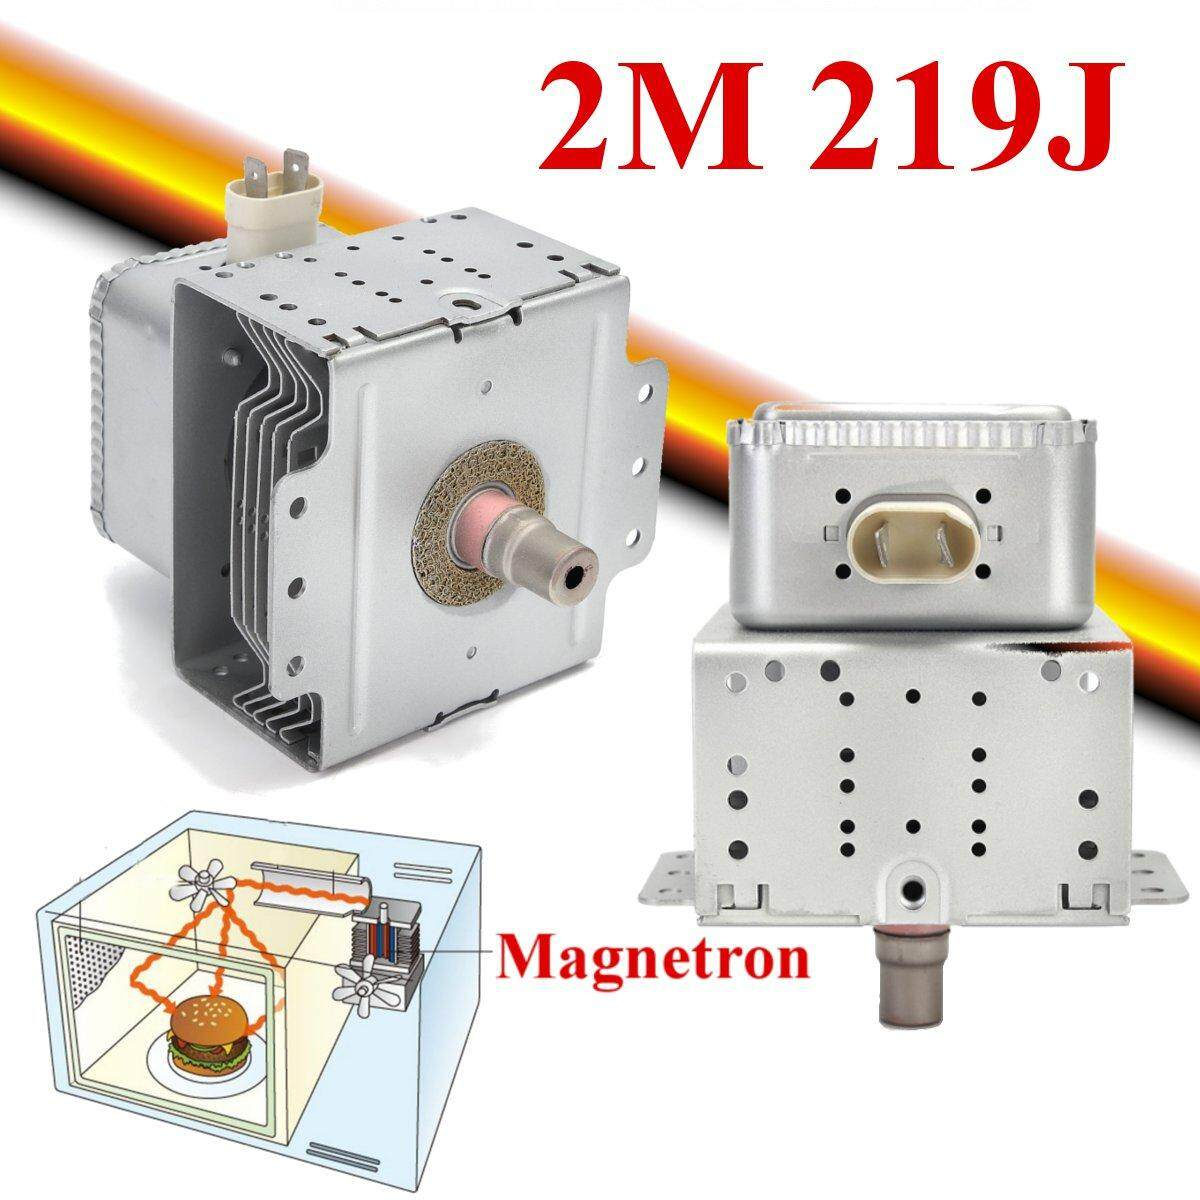 Microwave Oven Roaster Magnetron Replacement Parts For Midea Witol 2m 219j